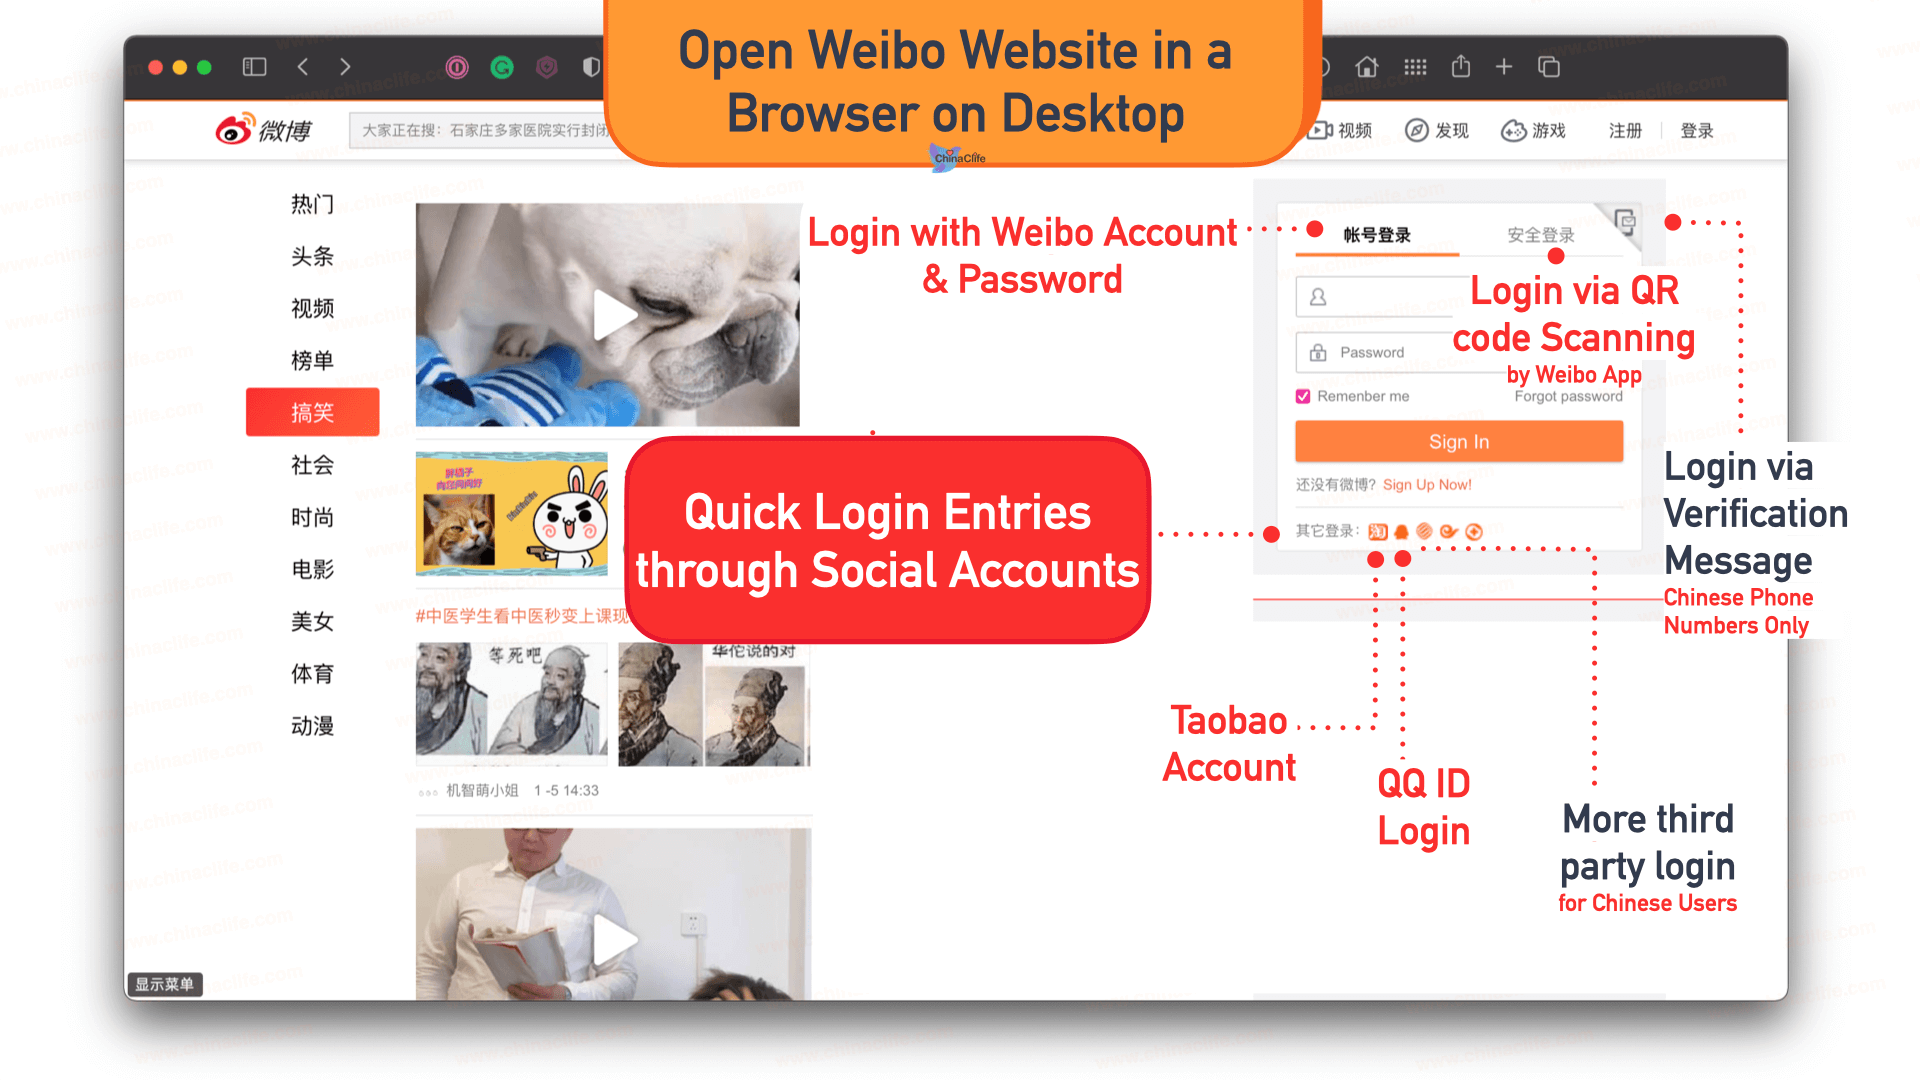 PC/Desktop Social Login Tutorial: Steps on How to Login in Weibo Website Through QQ iD, WeChat, Taobao account and more